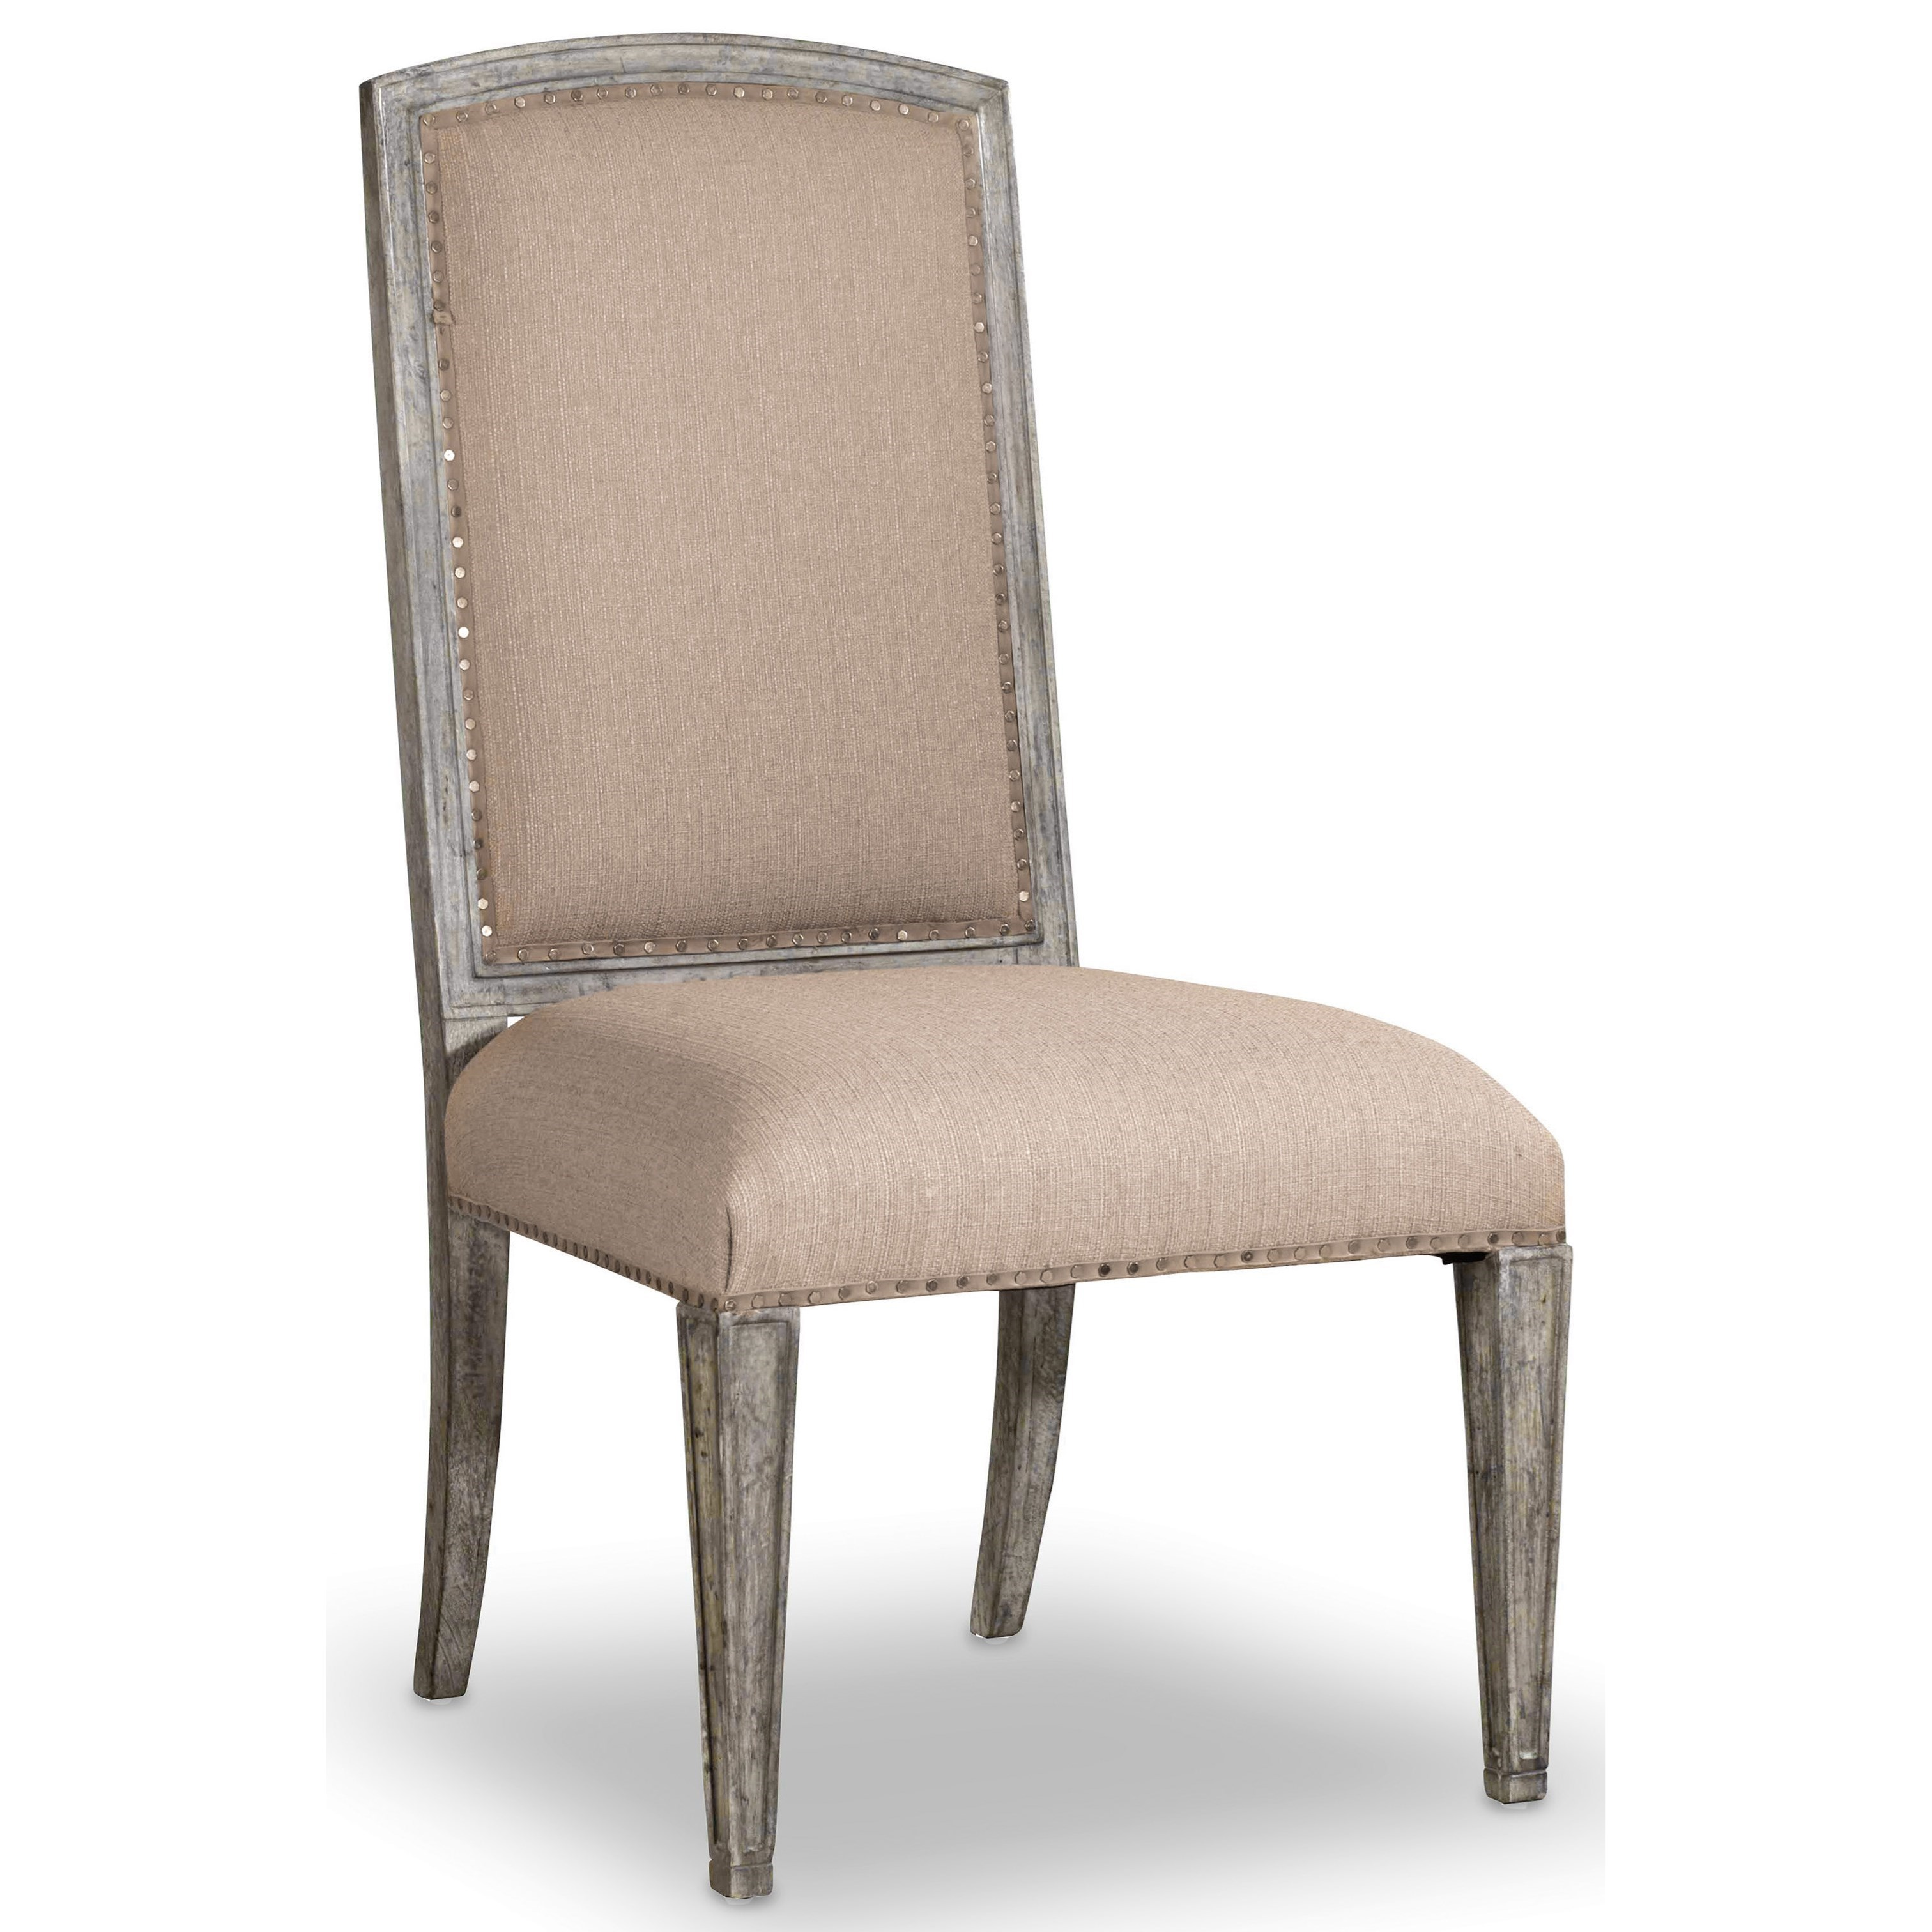 True Vintage Upholstered Side Chair by Hooker Furniture at Suburban Furniture